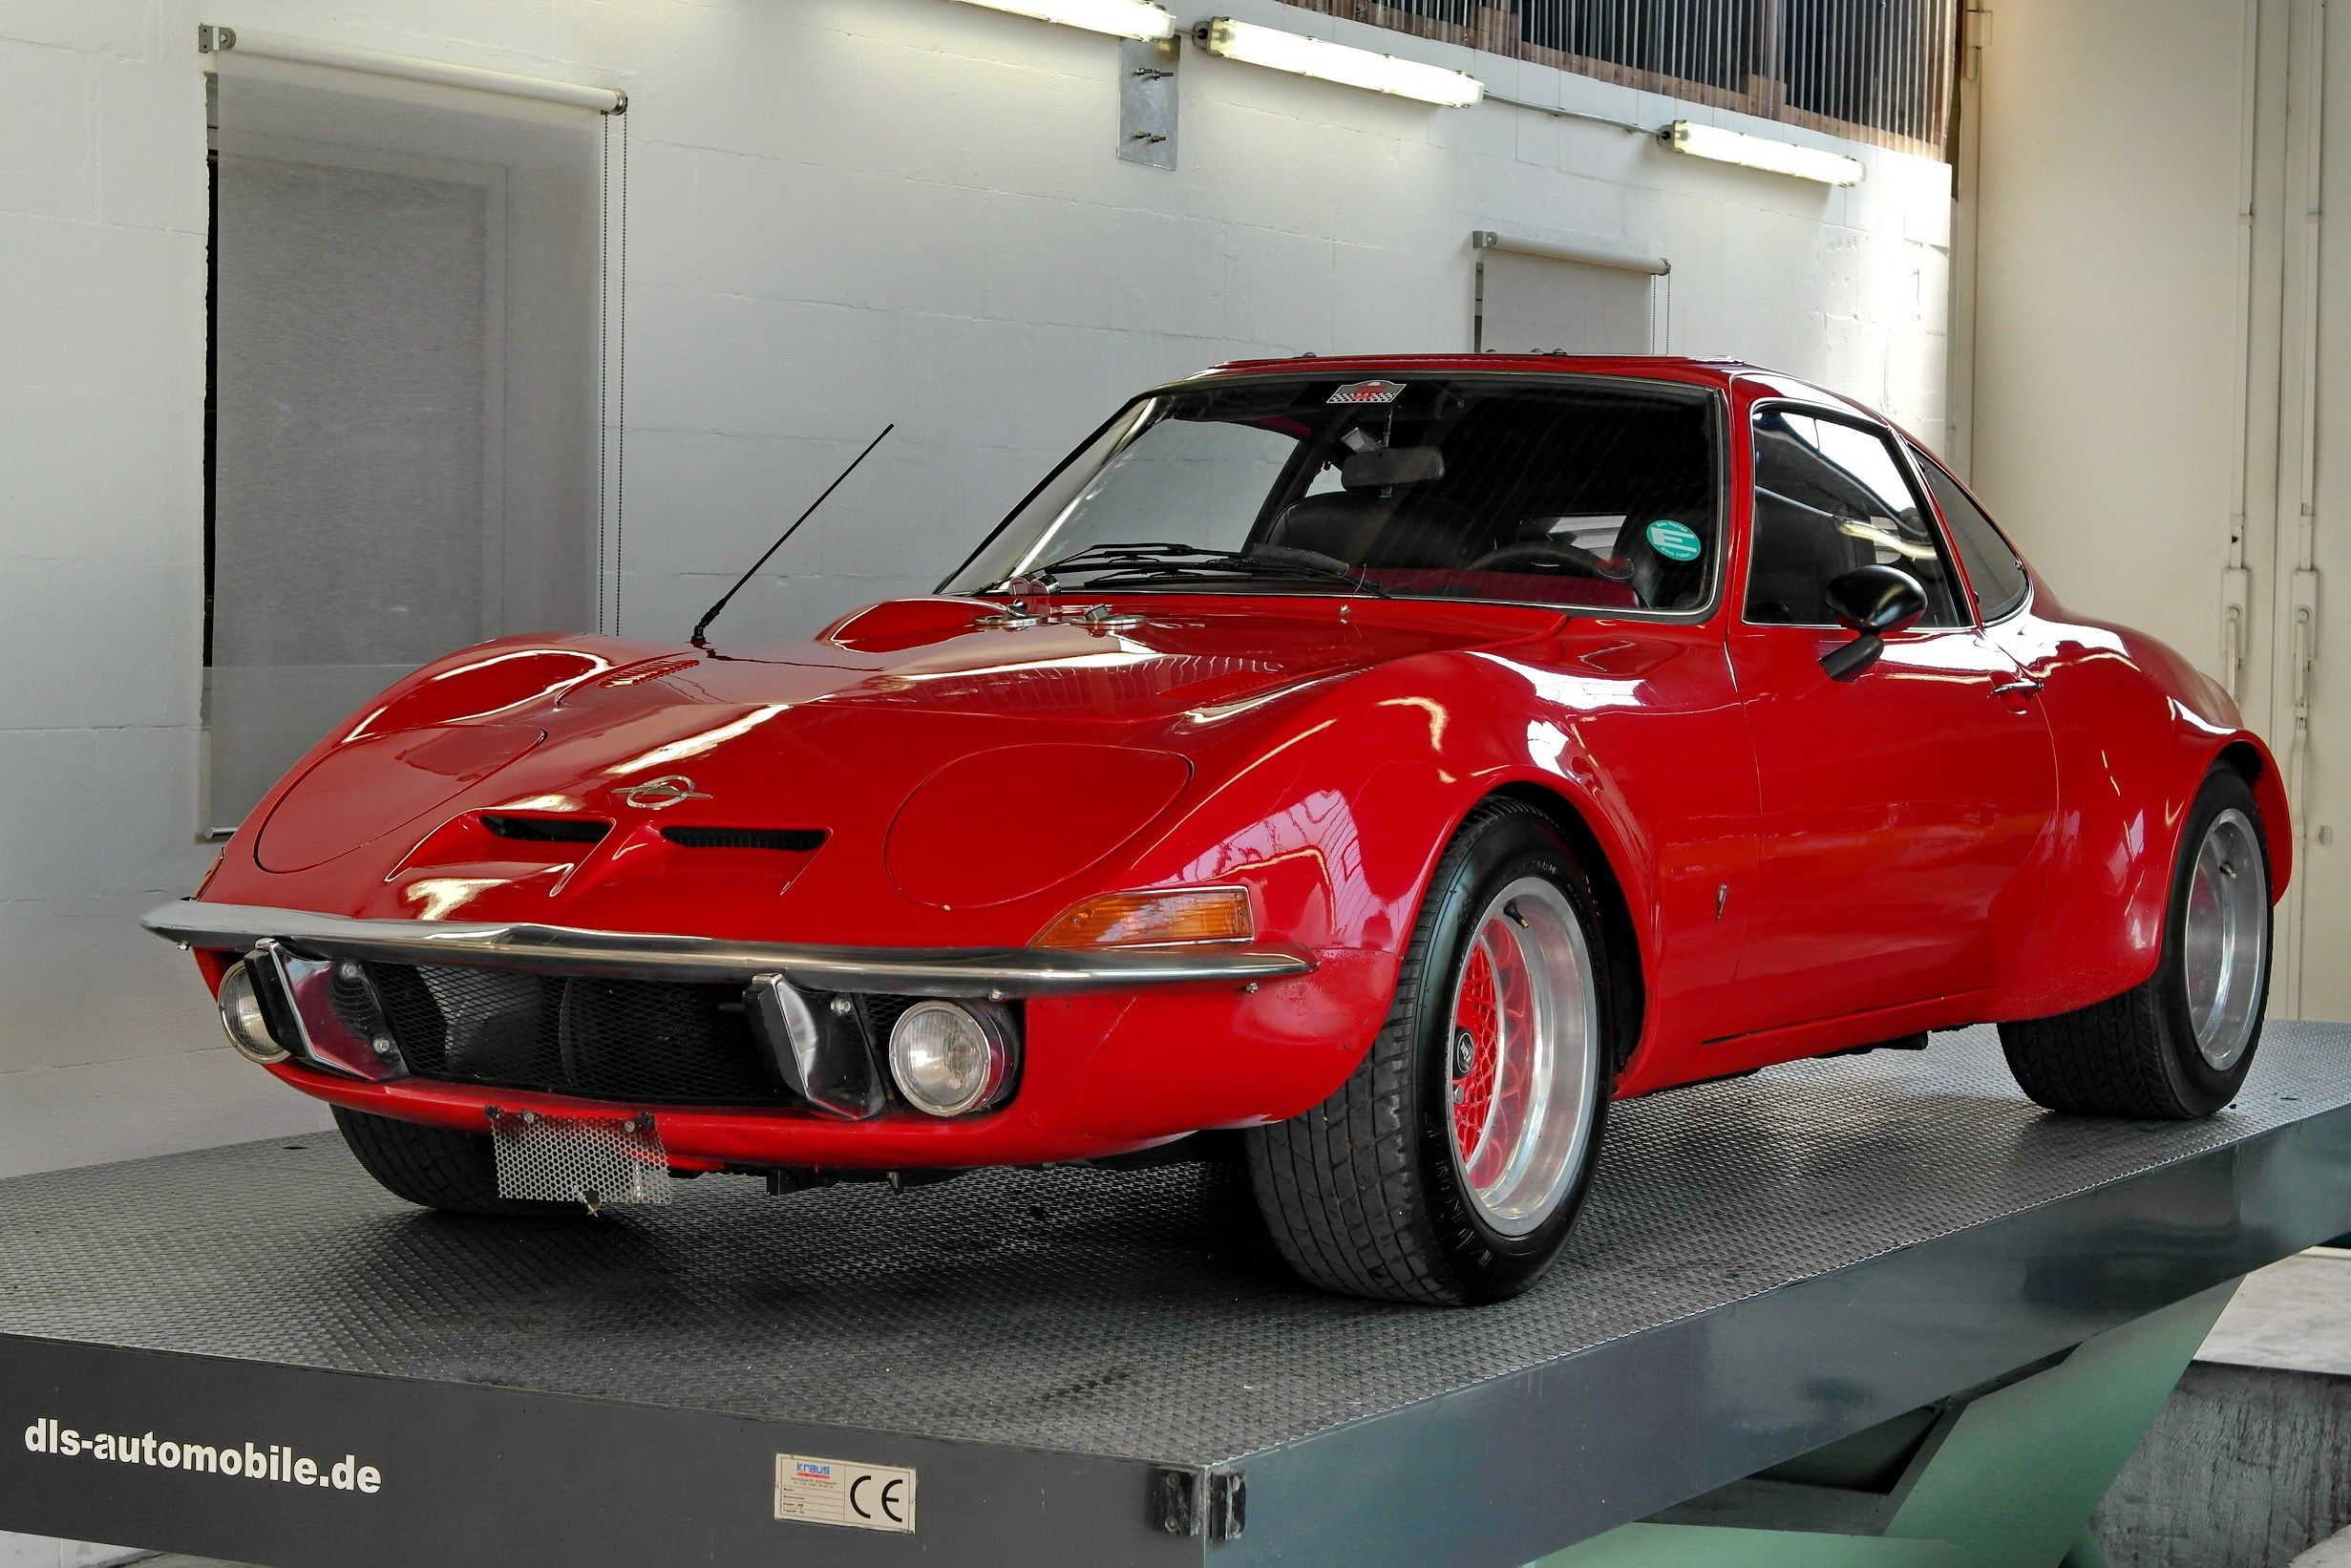 hight resolution of opel gt v8 02 dls automobile